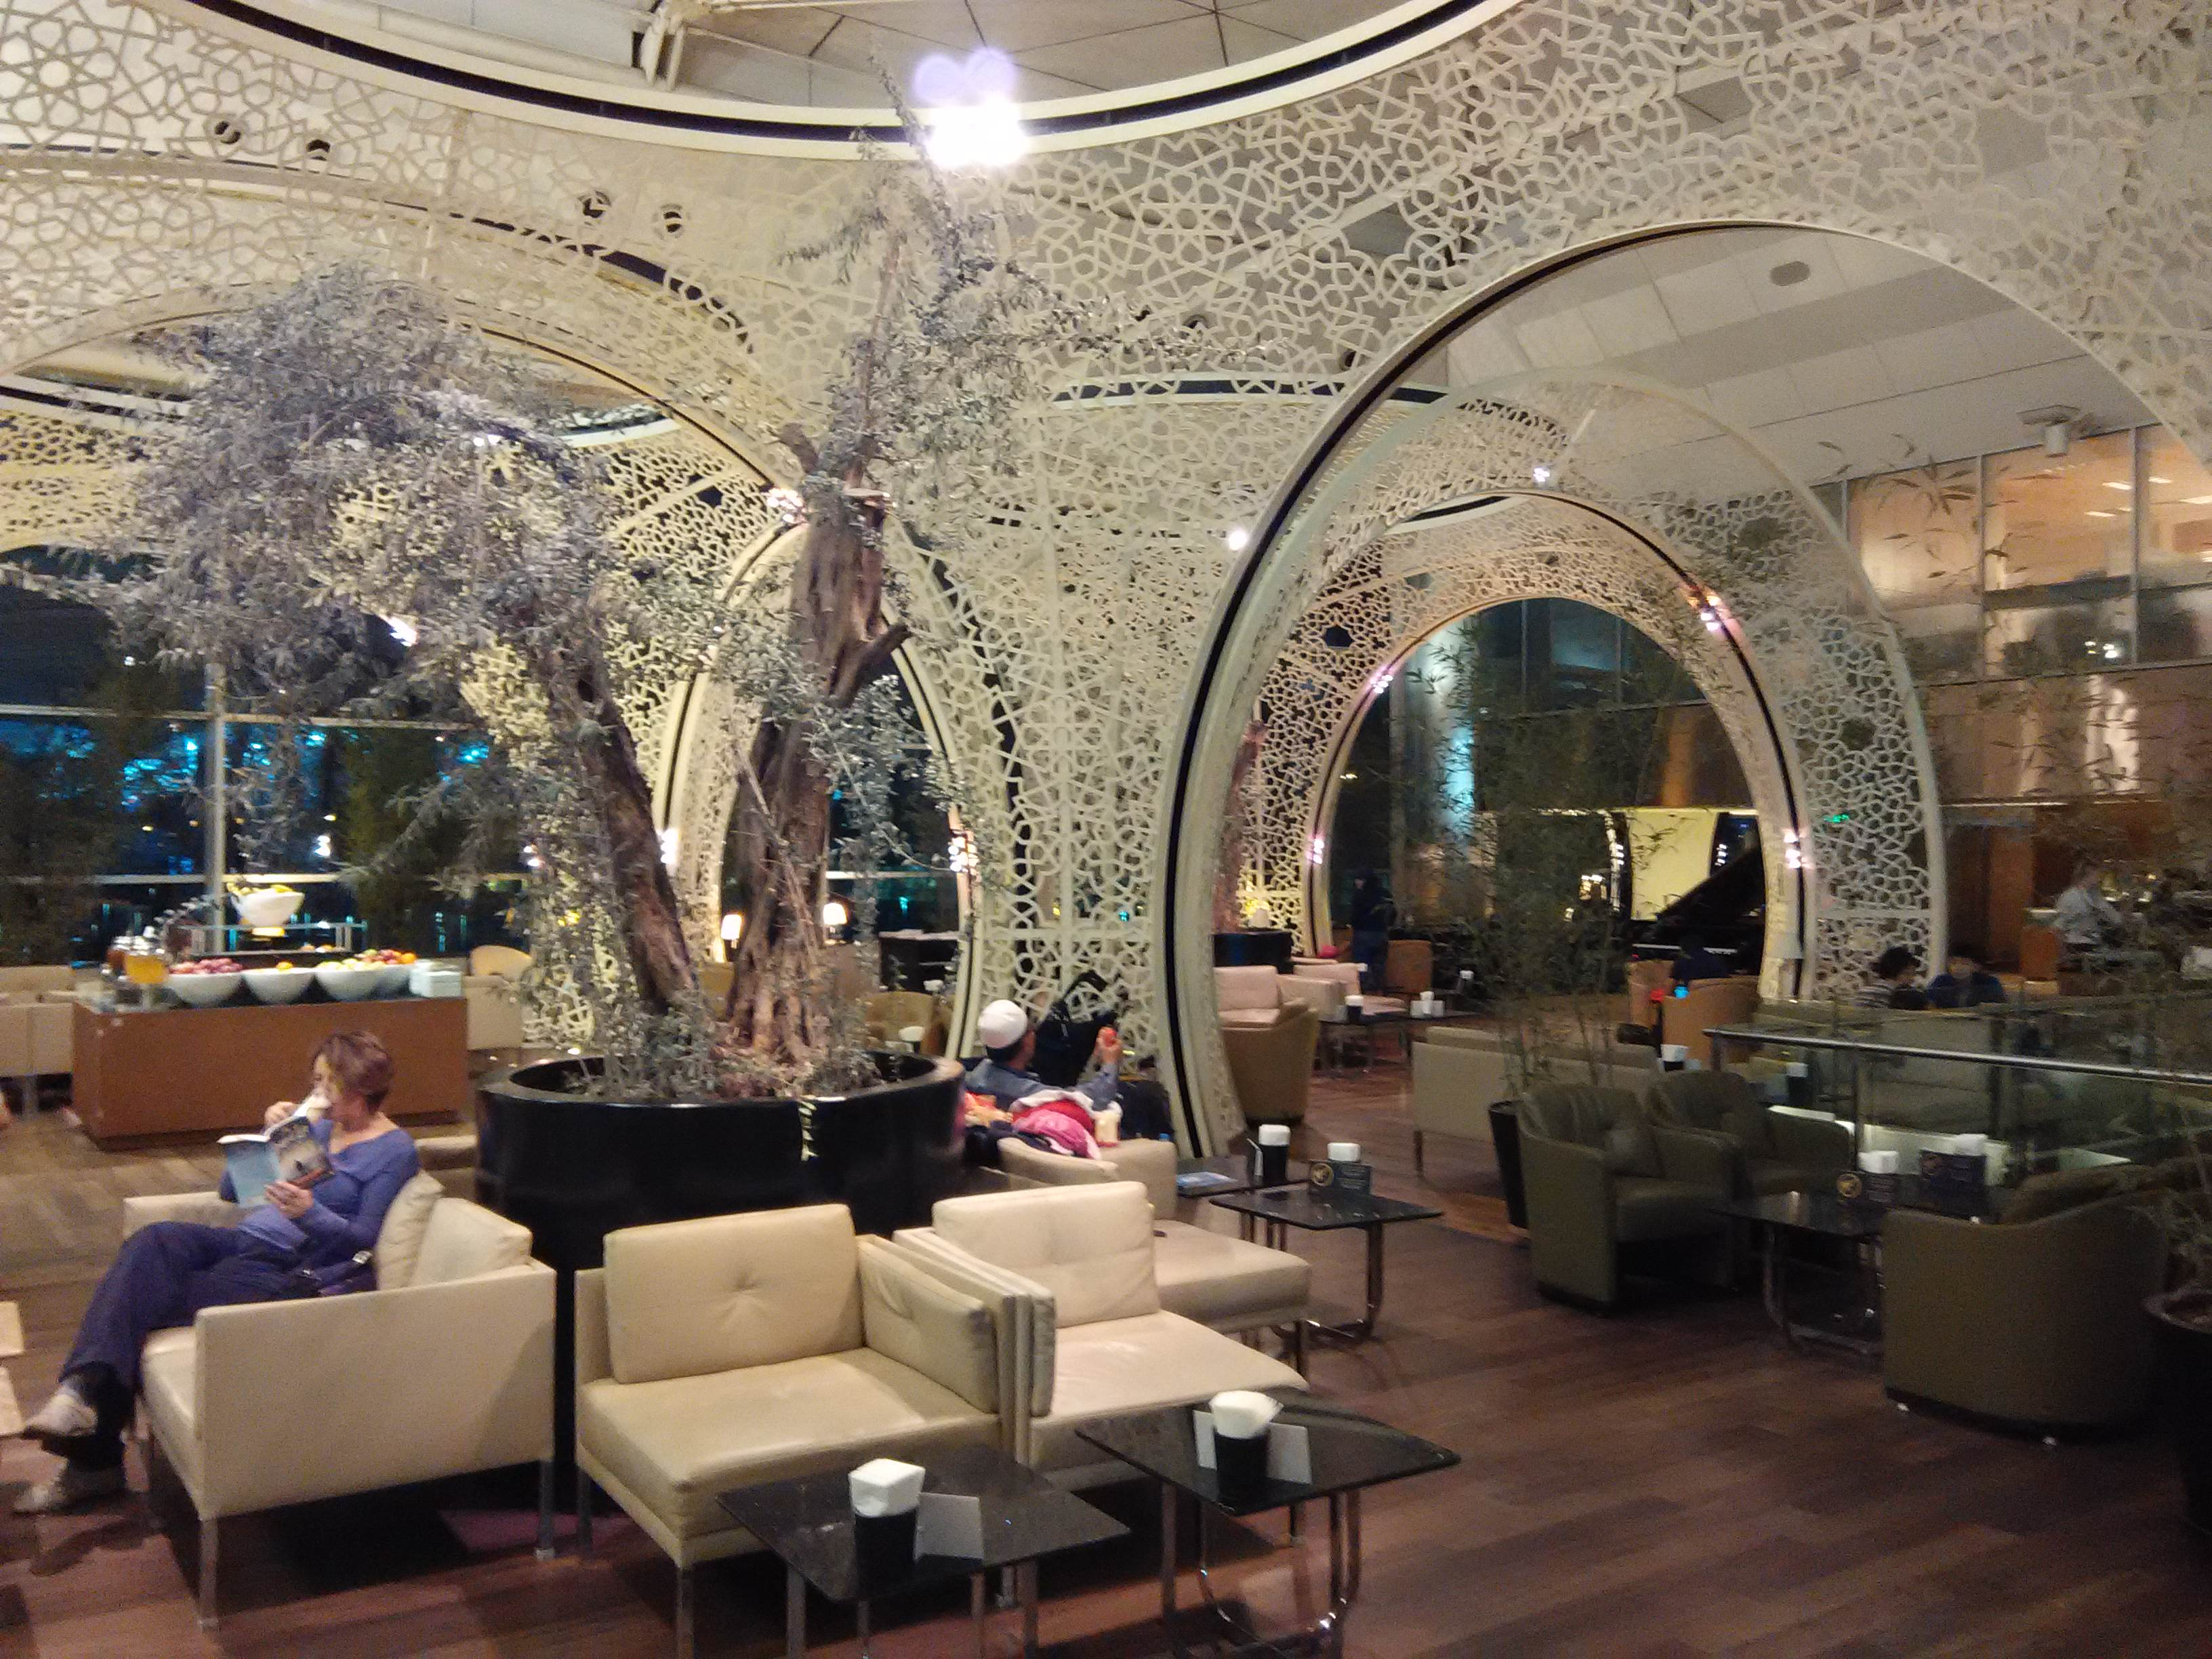 Classy and Elegant Decor in Istanbul Lounge